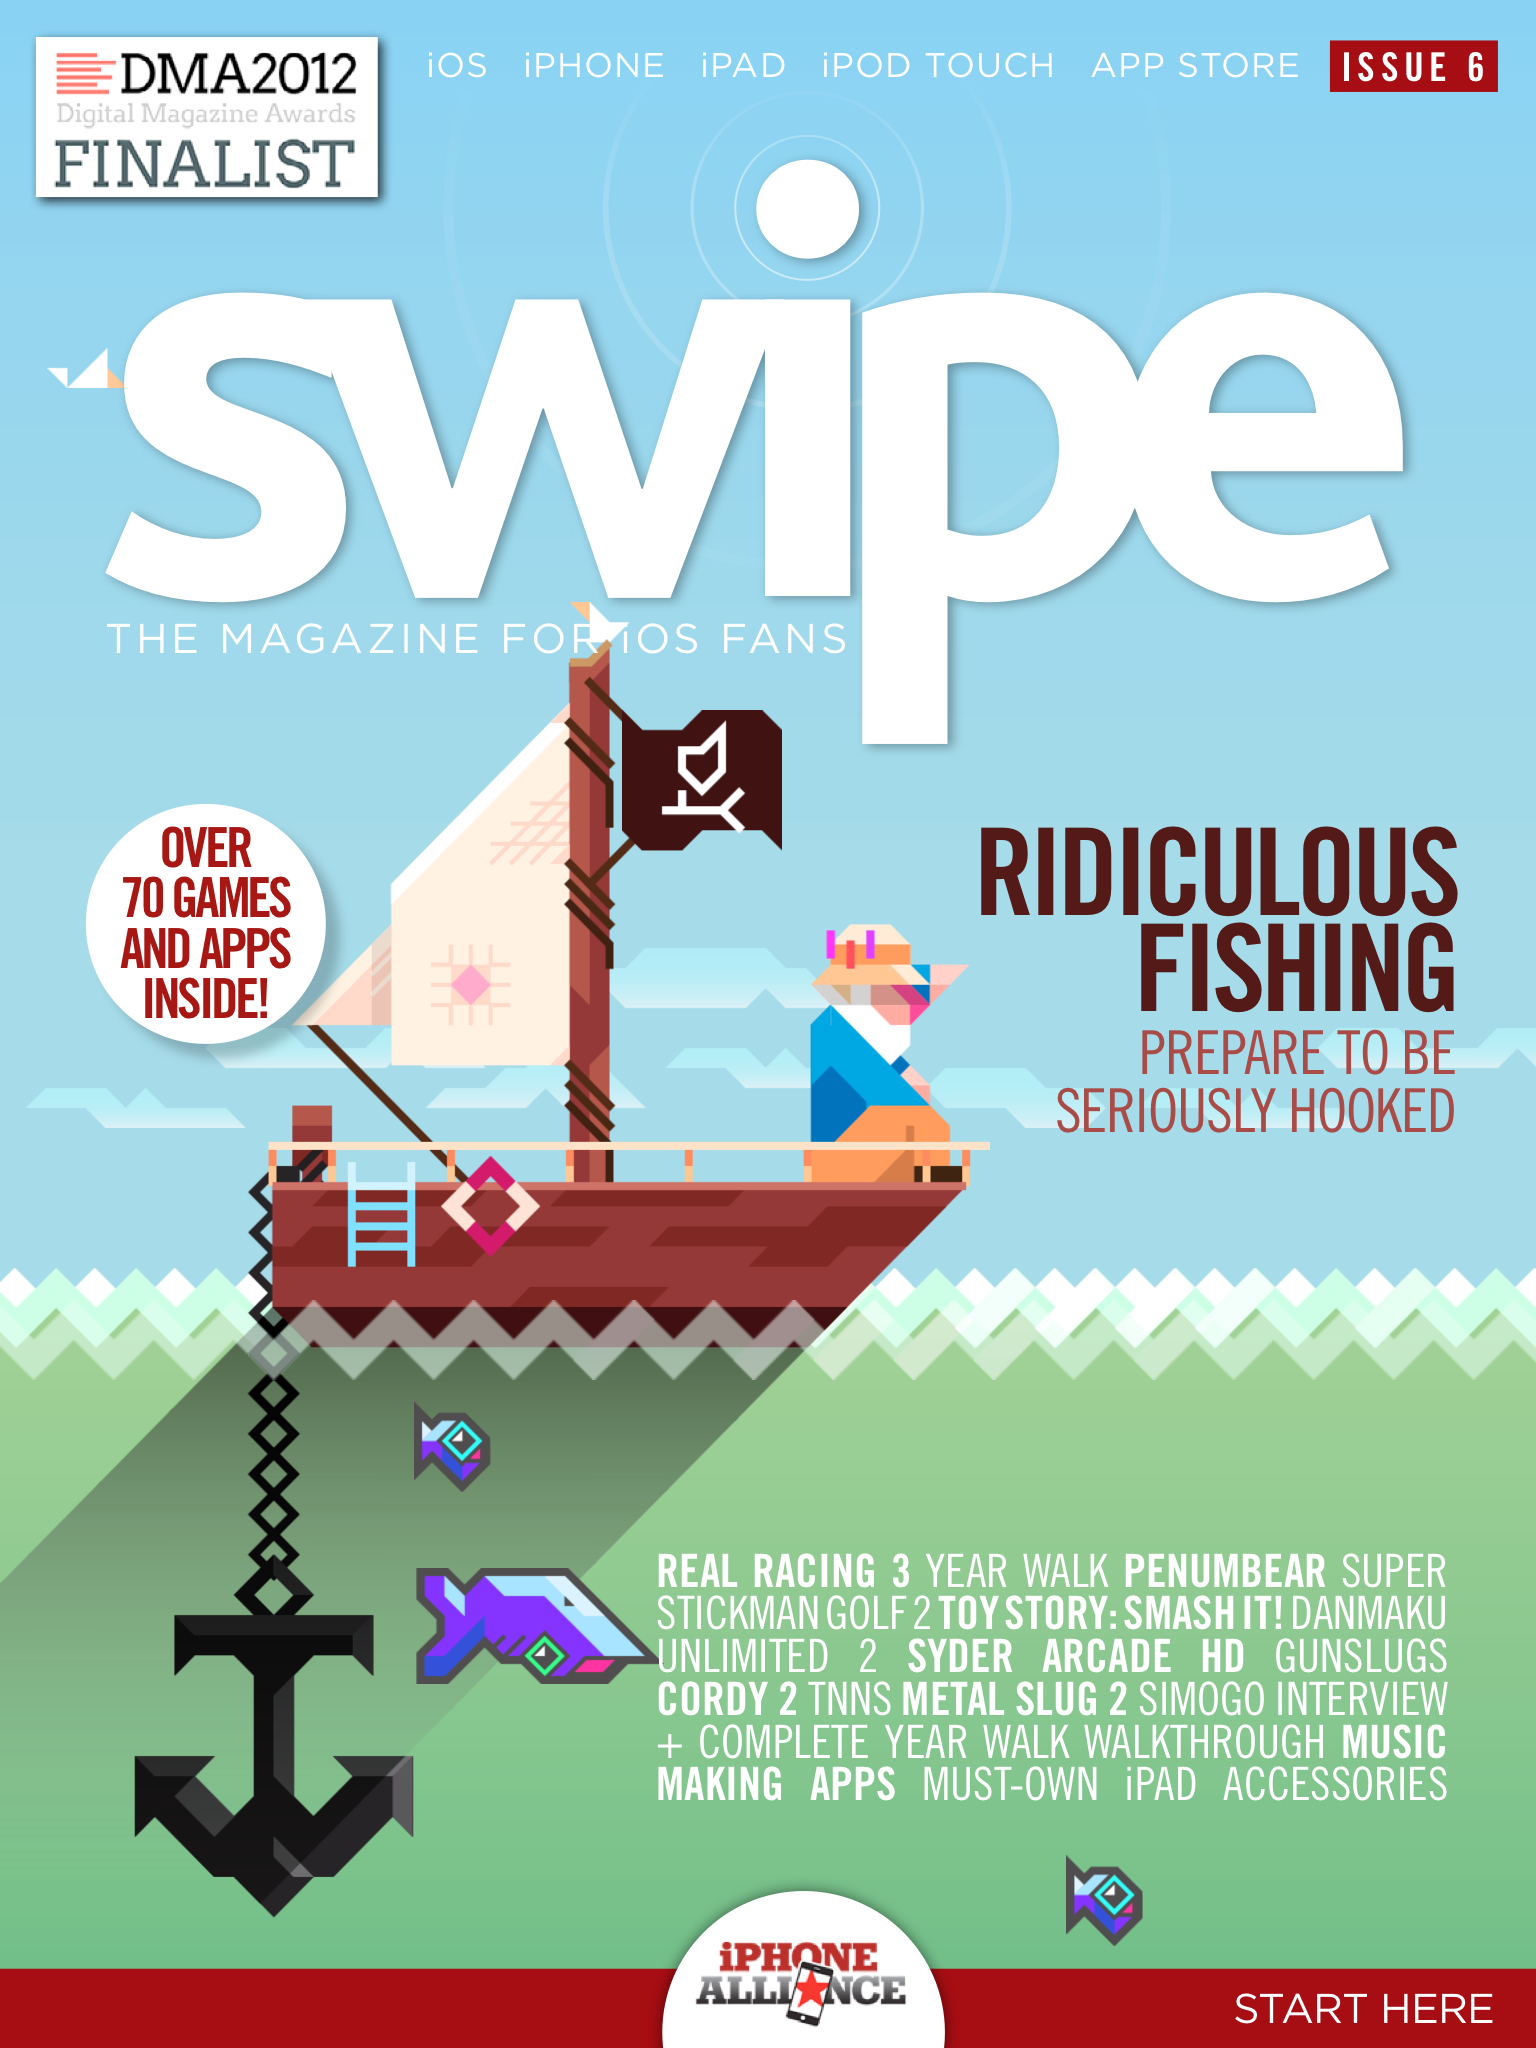 Ridiculous Fishing-friendly issue 6 of Steel Media's swipe magazine surfaces on the App Store